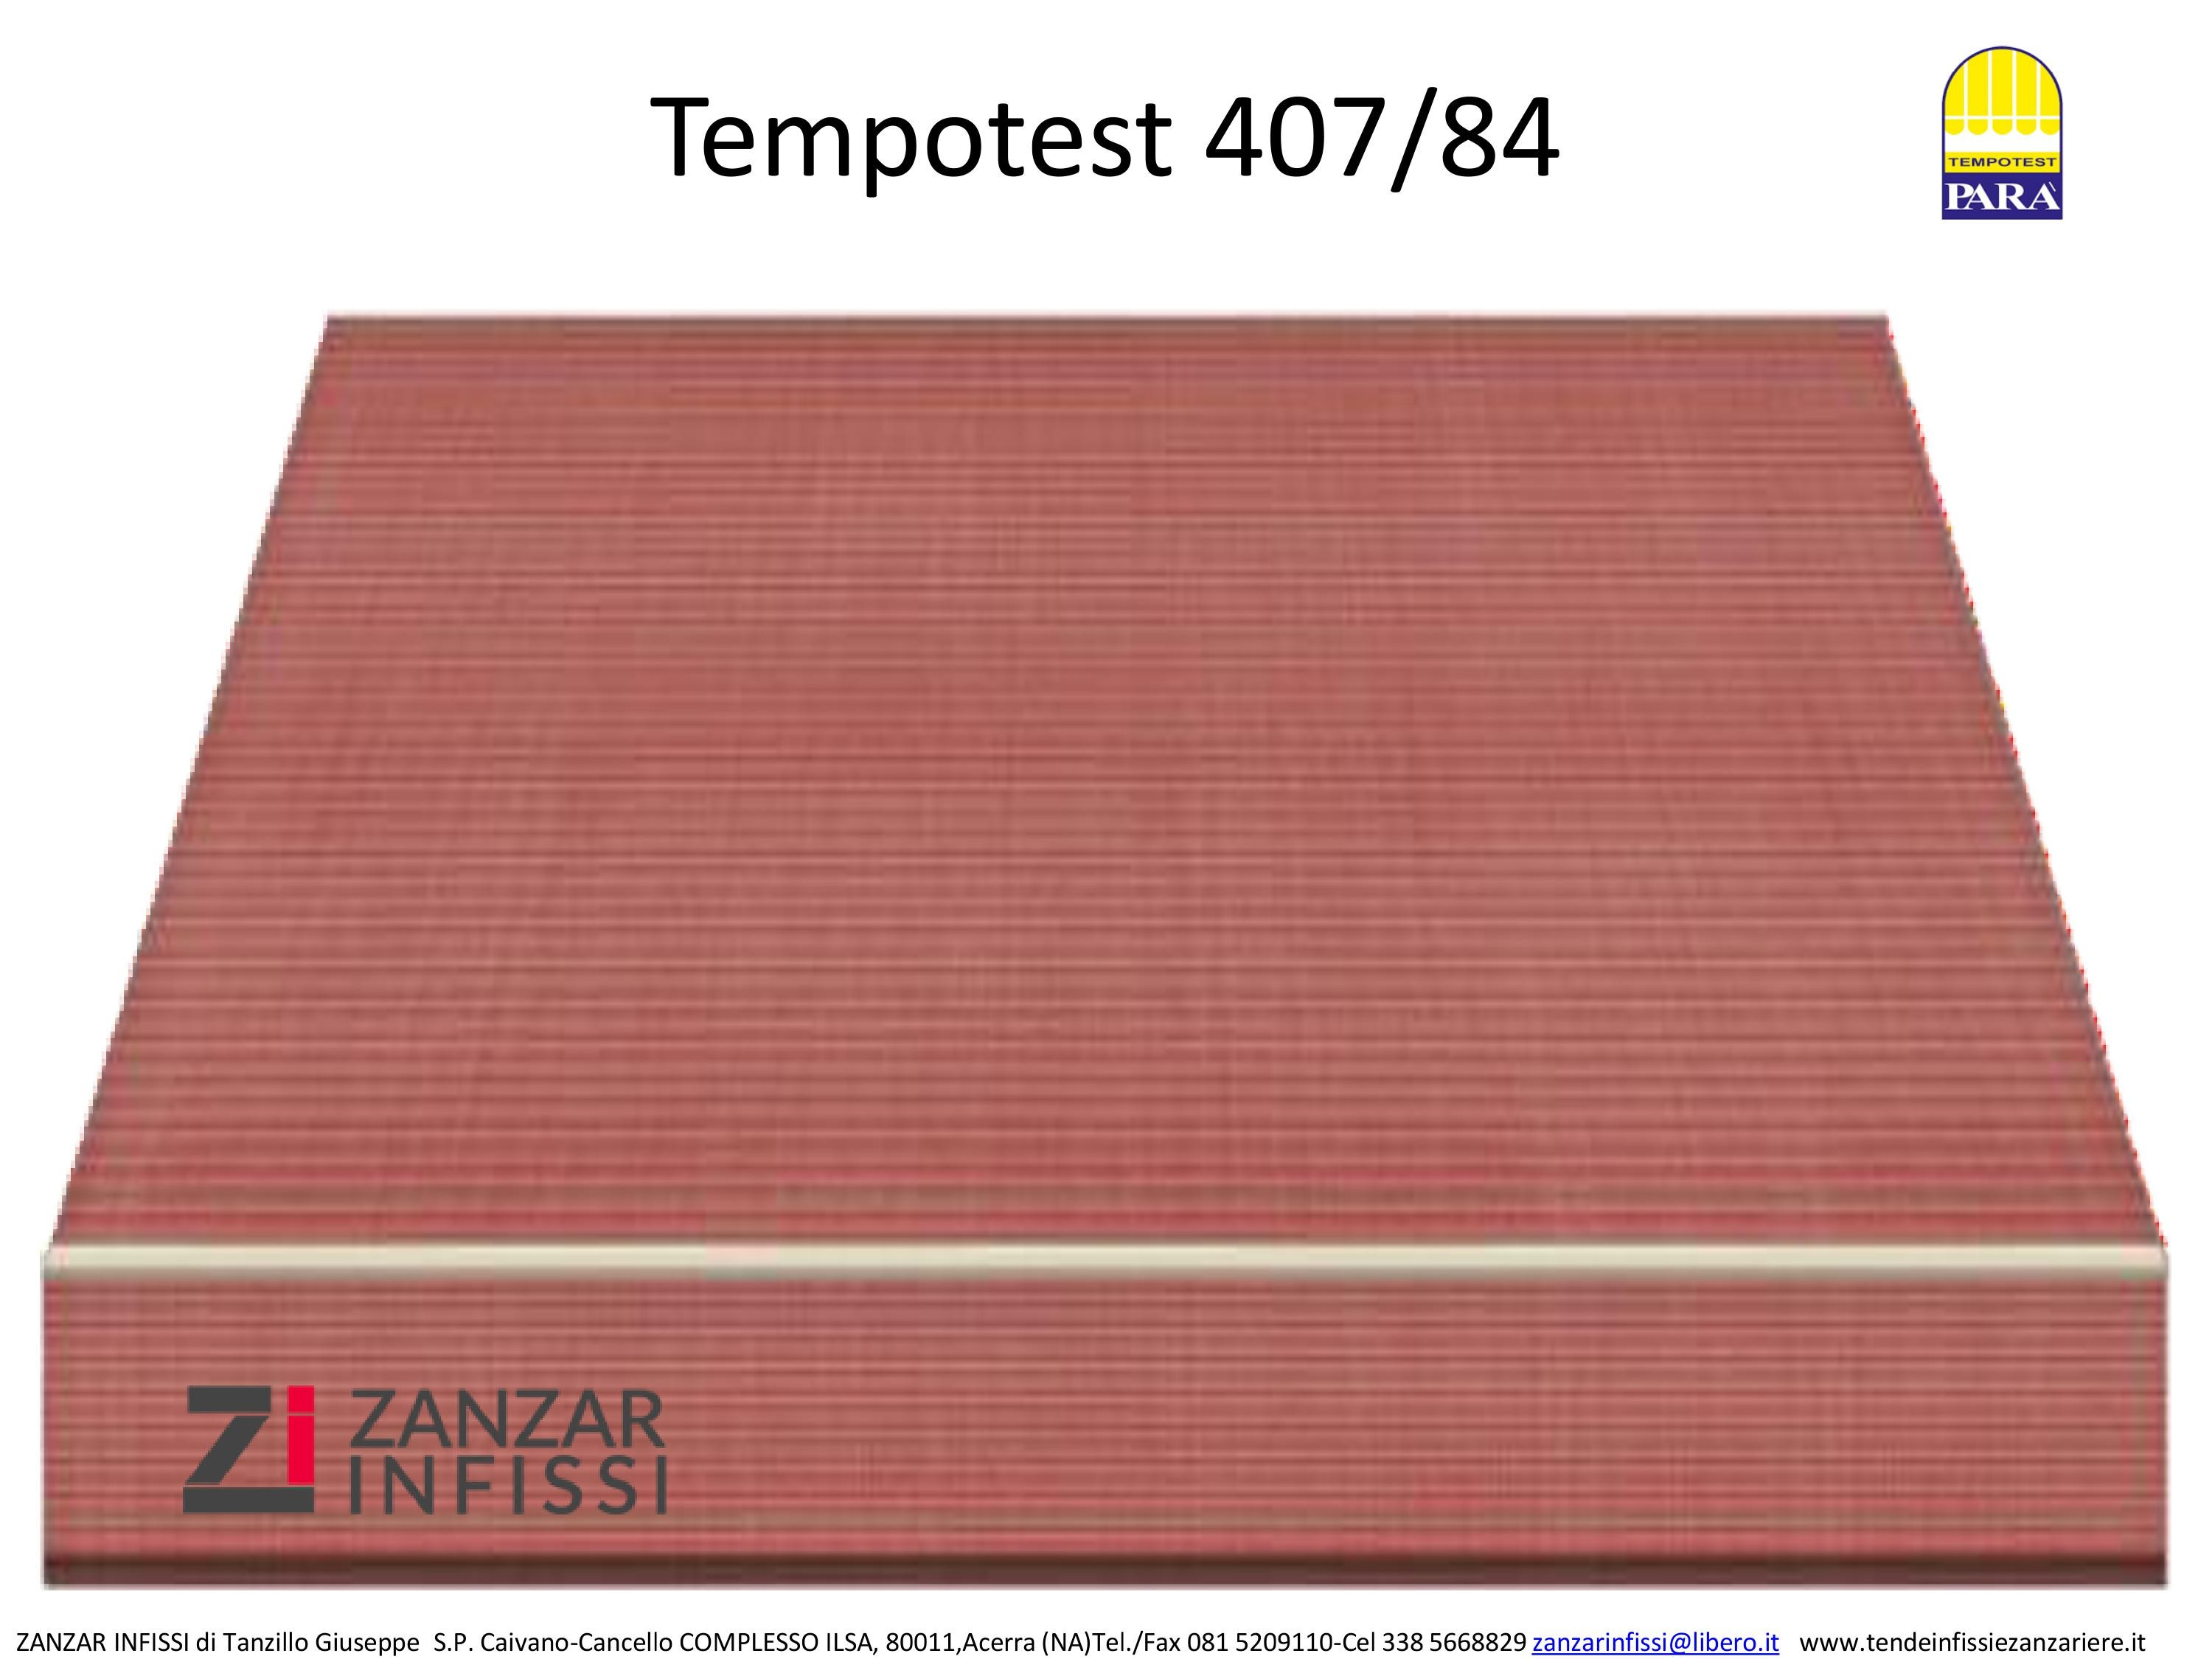 Tempotest 407/84